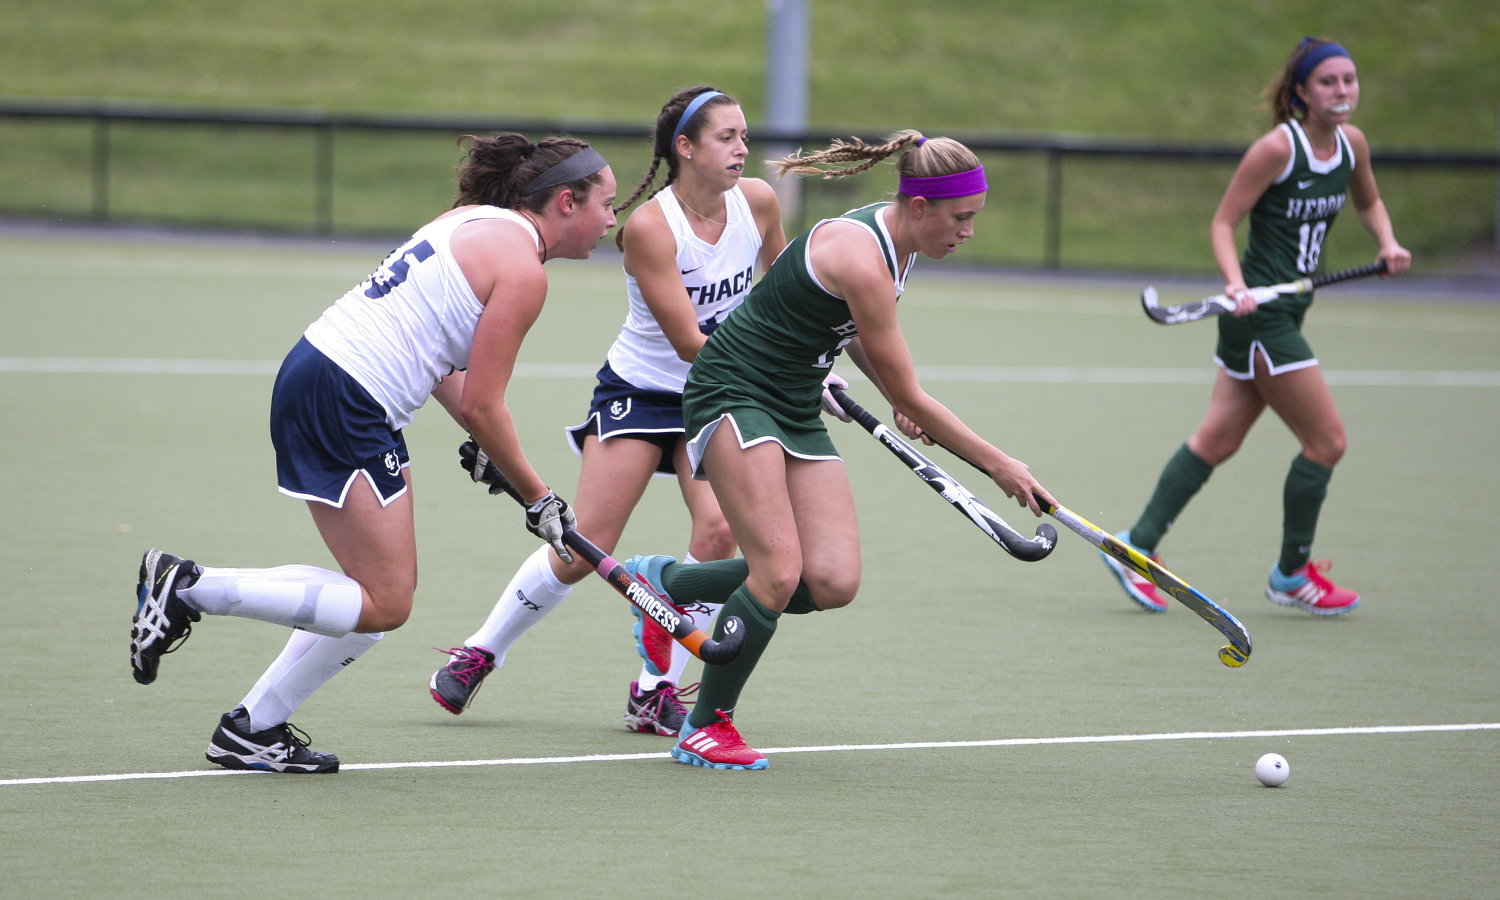 Heron Sierramarie Fitzgerald '18 gets past the thaca defense during the first half of Saturdays 6-2 win over the Bombers.